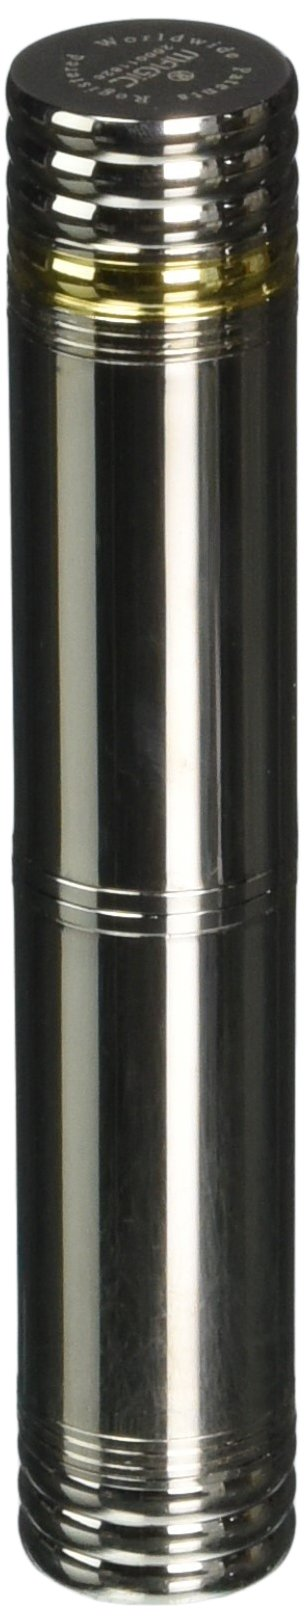 Visol Products VCASE5000 Advance Retractable Stainless Steel Cigar Tube